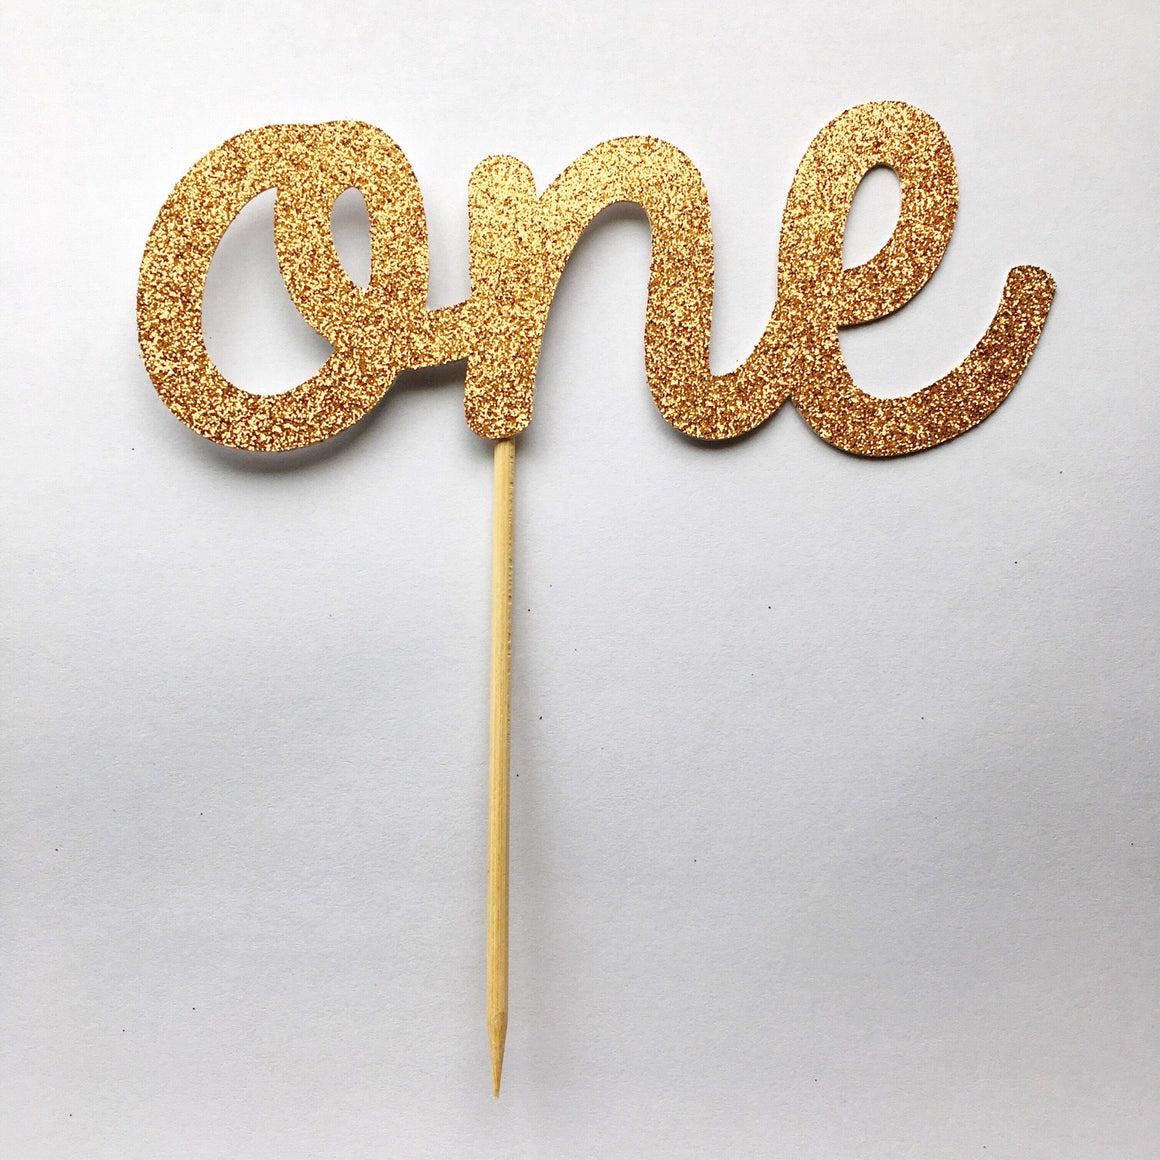 CAKE TOPPER - ONE ROSE GOLD GLITTER, Picks + Toppers, BON + CO - Bon + Co. Party Studio